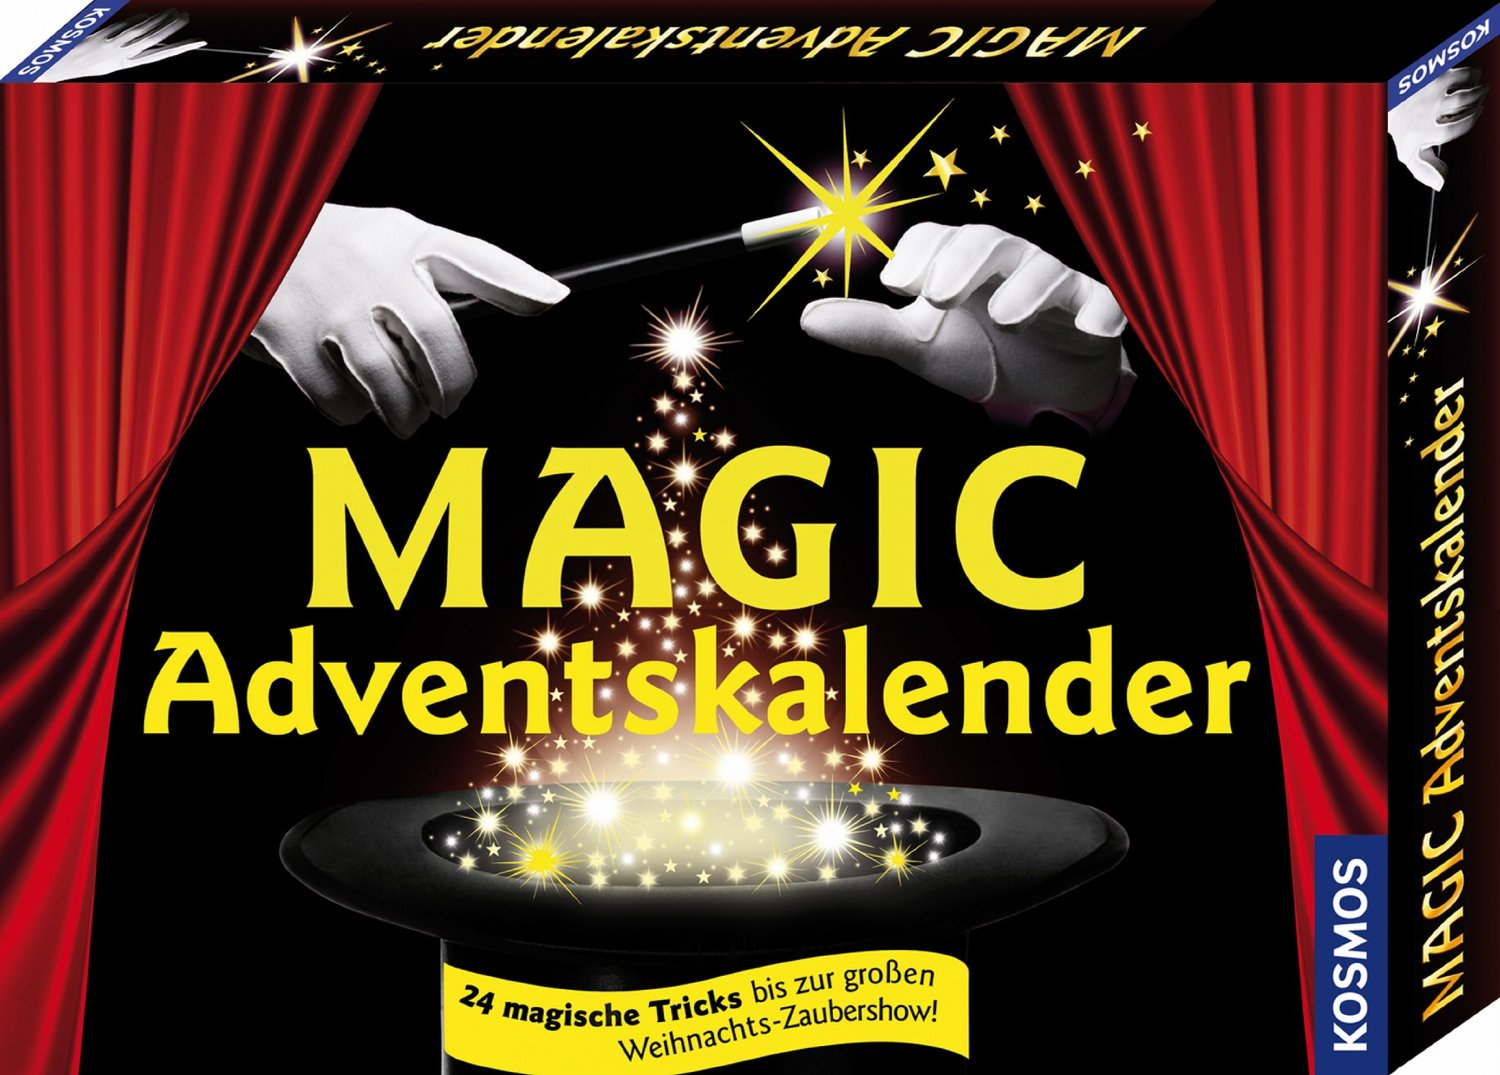 Kosmos Magic Zauberschule Adventskalender 2012